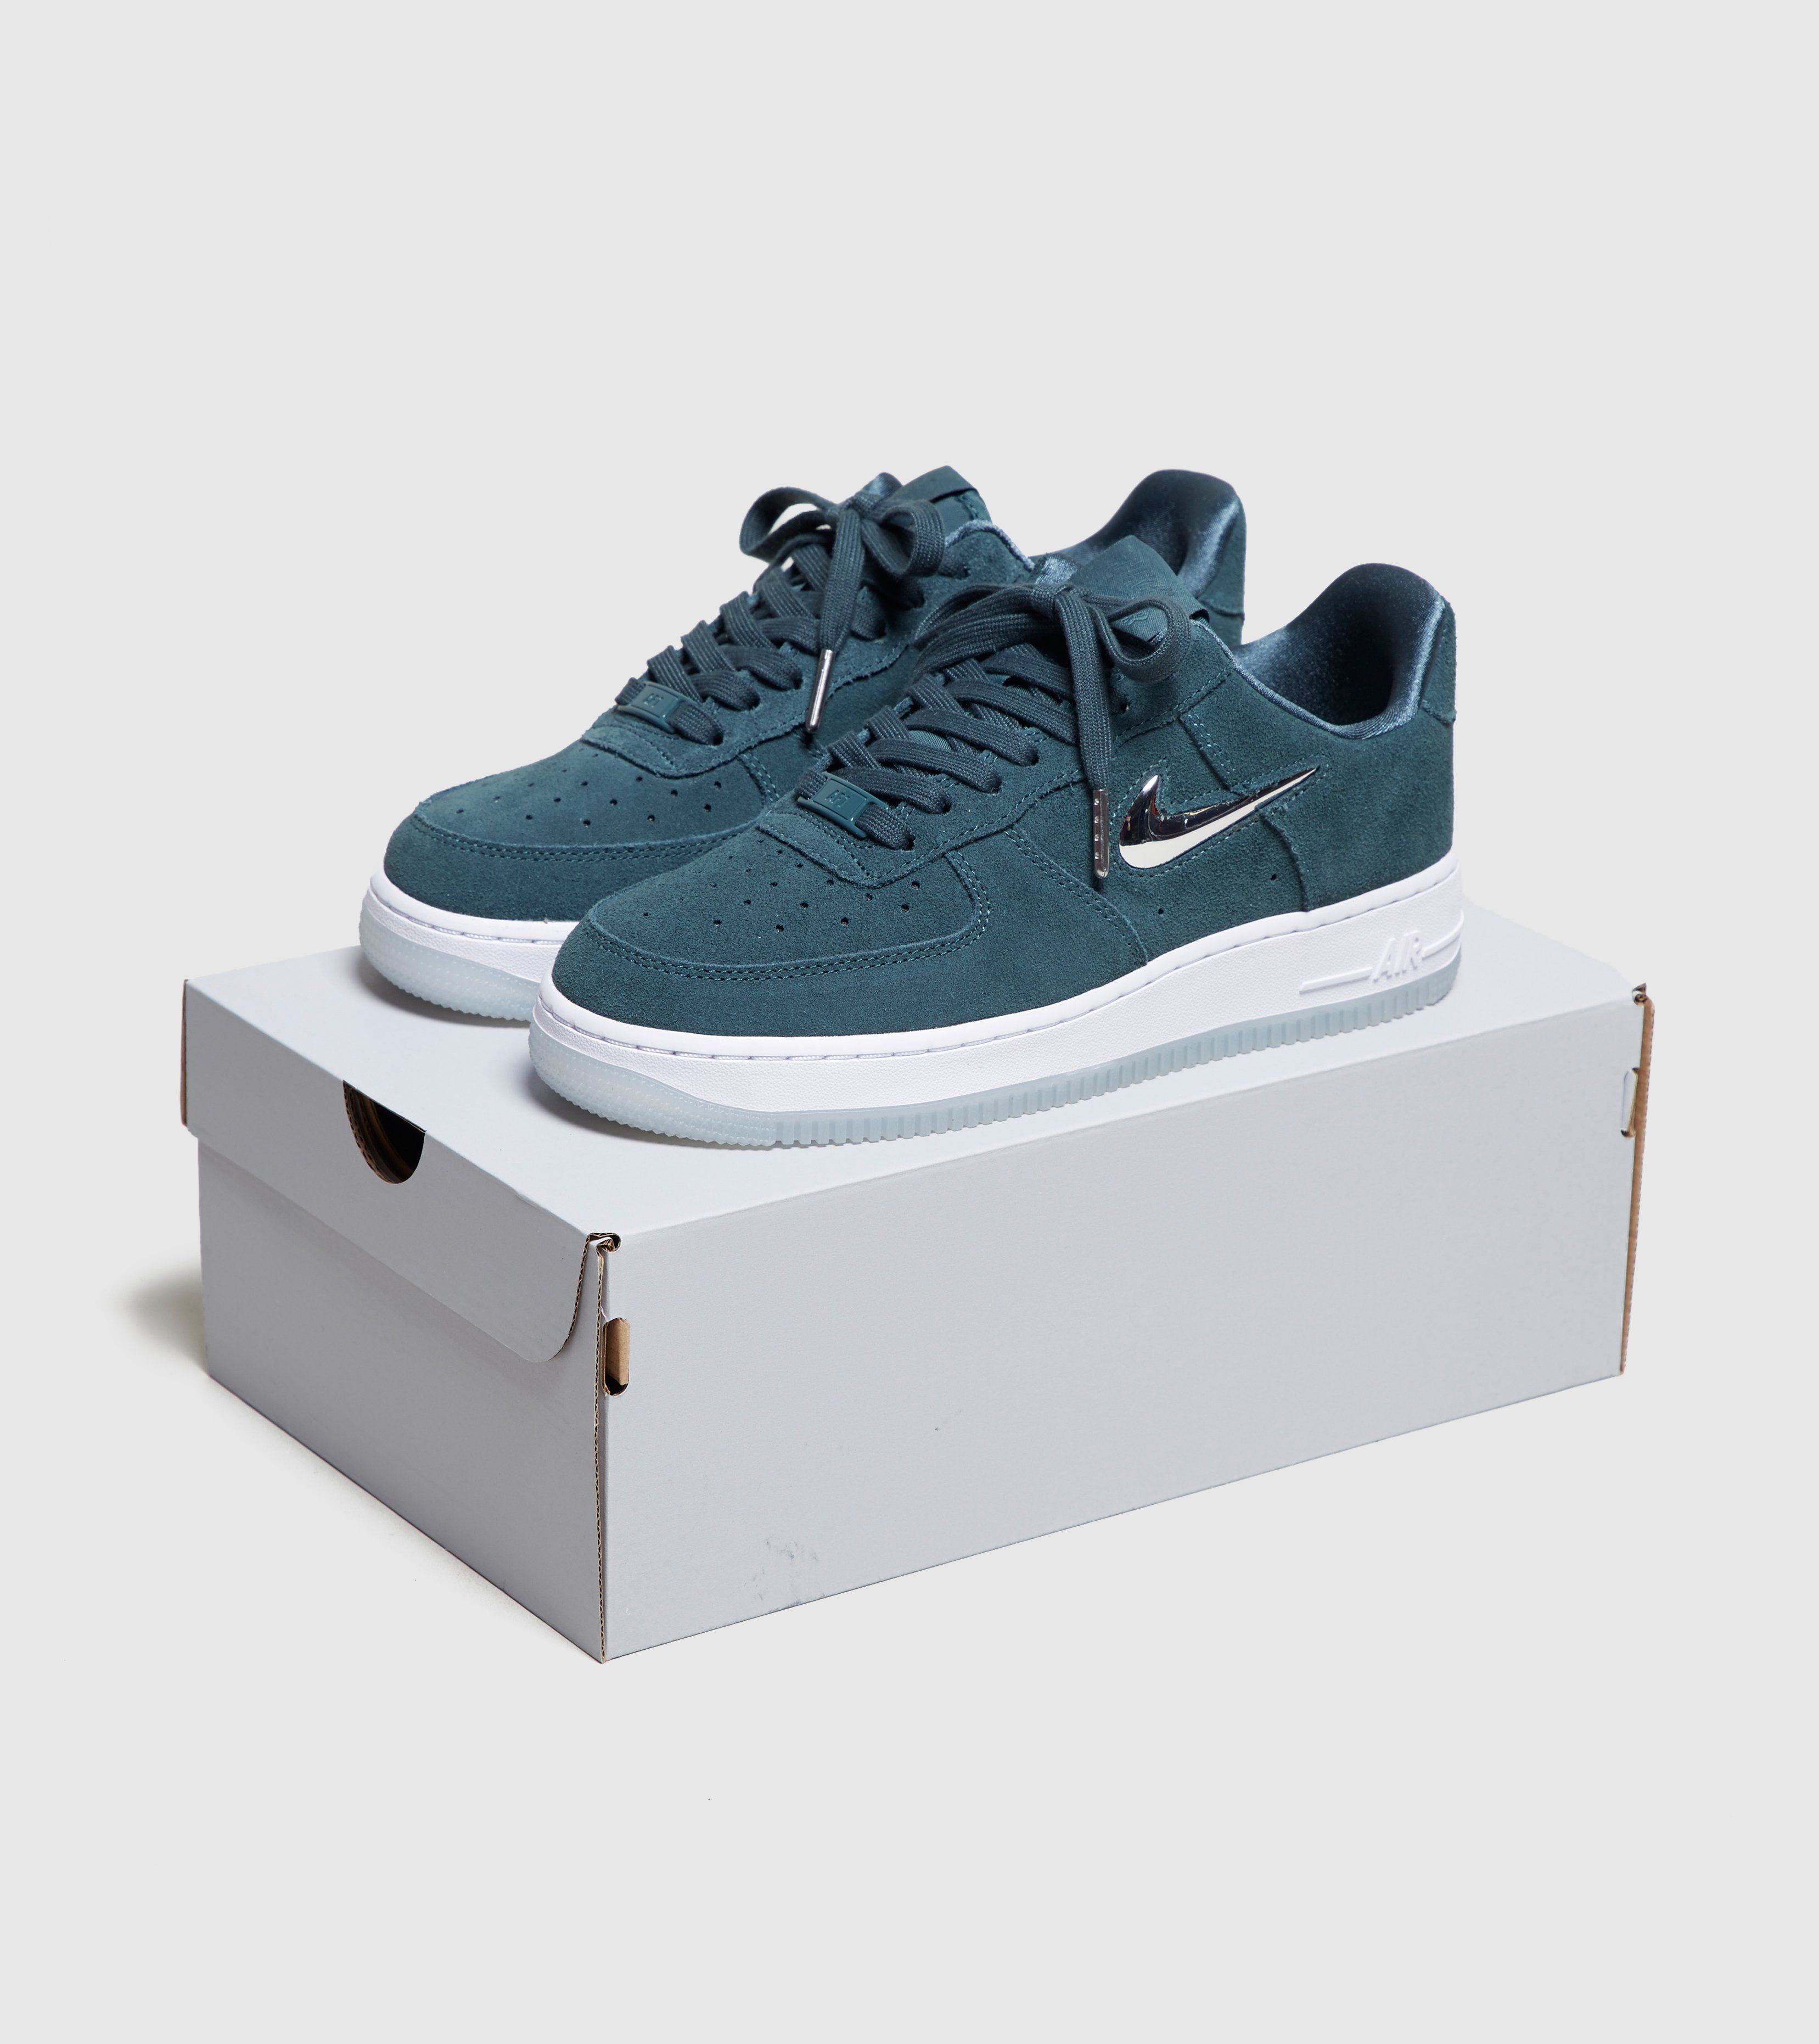 Nike Air Force 1 Jewel Low Women's